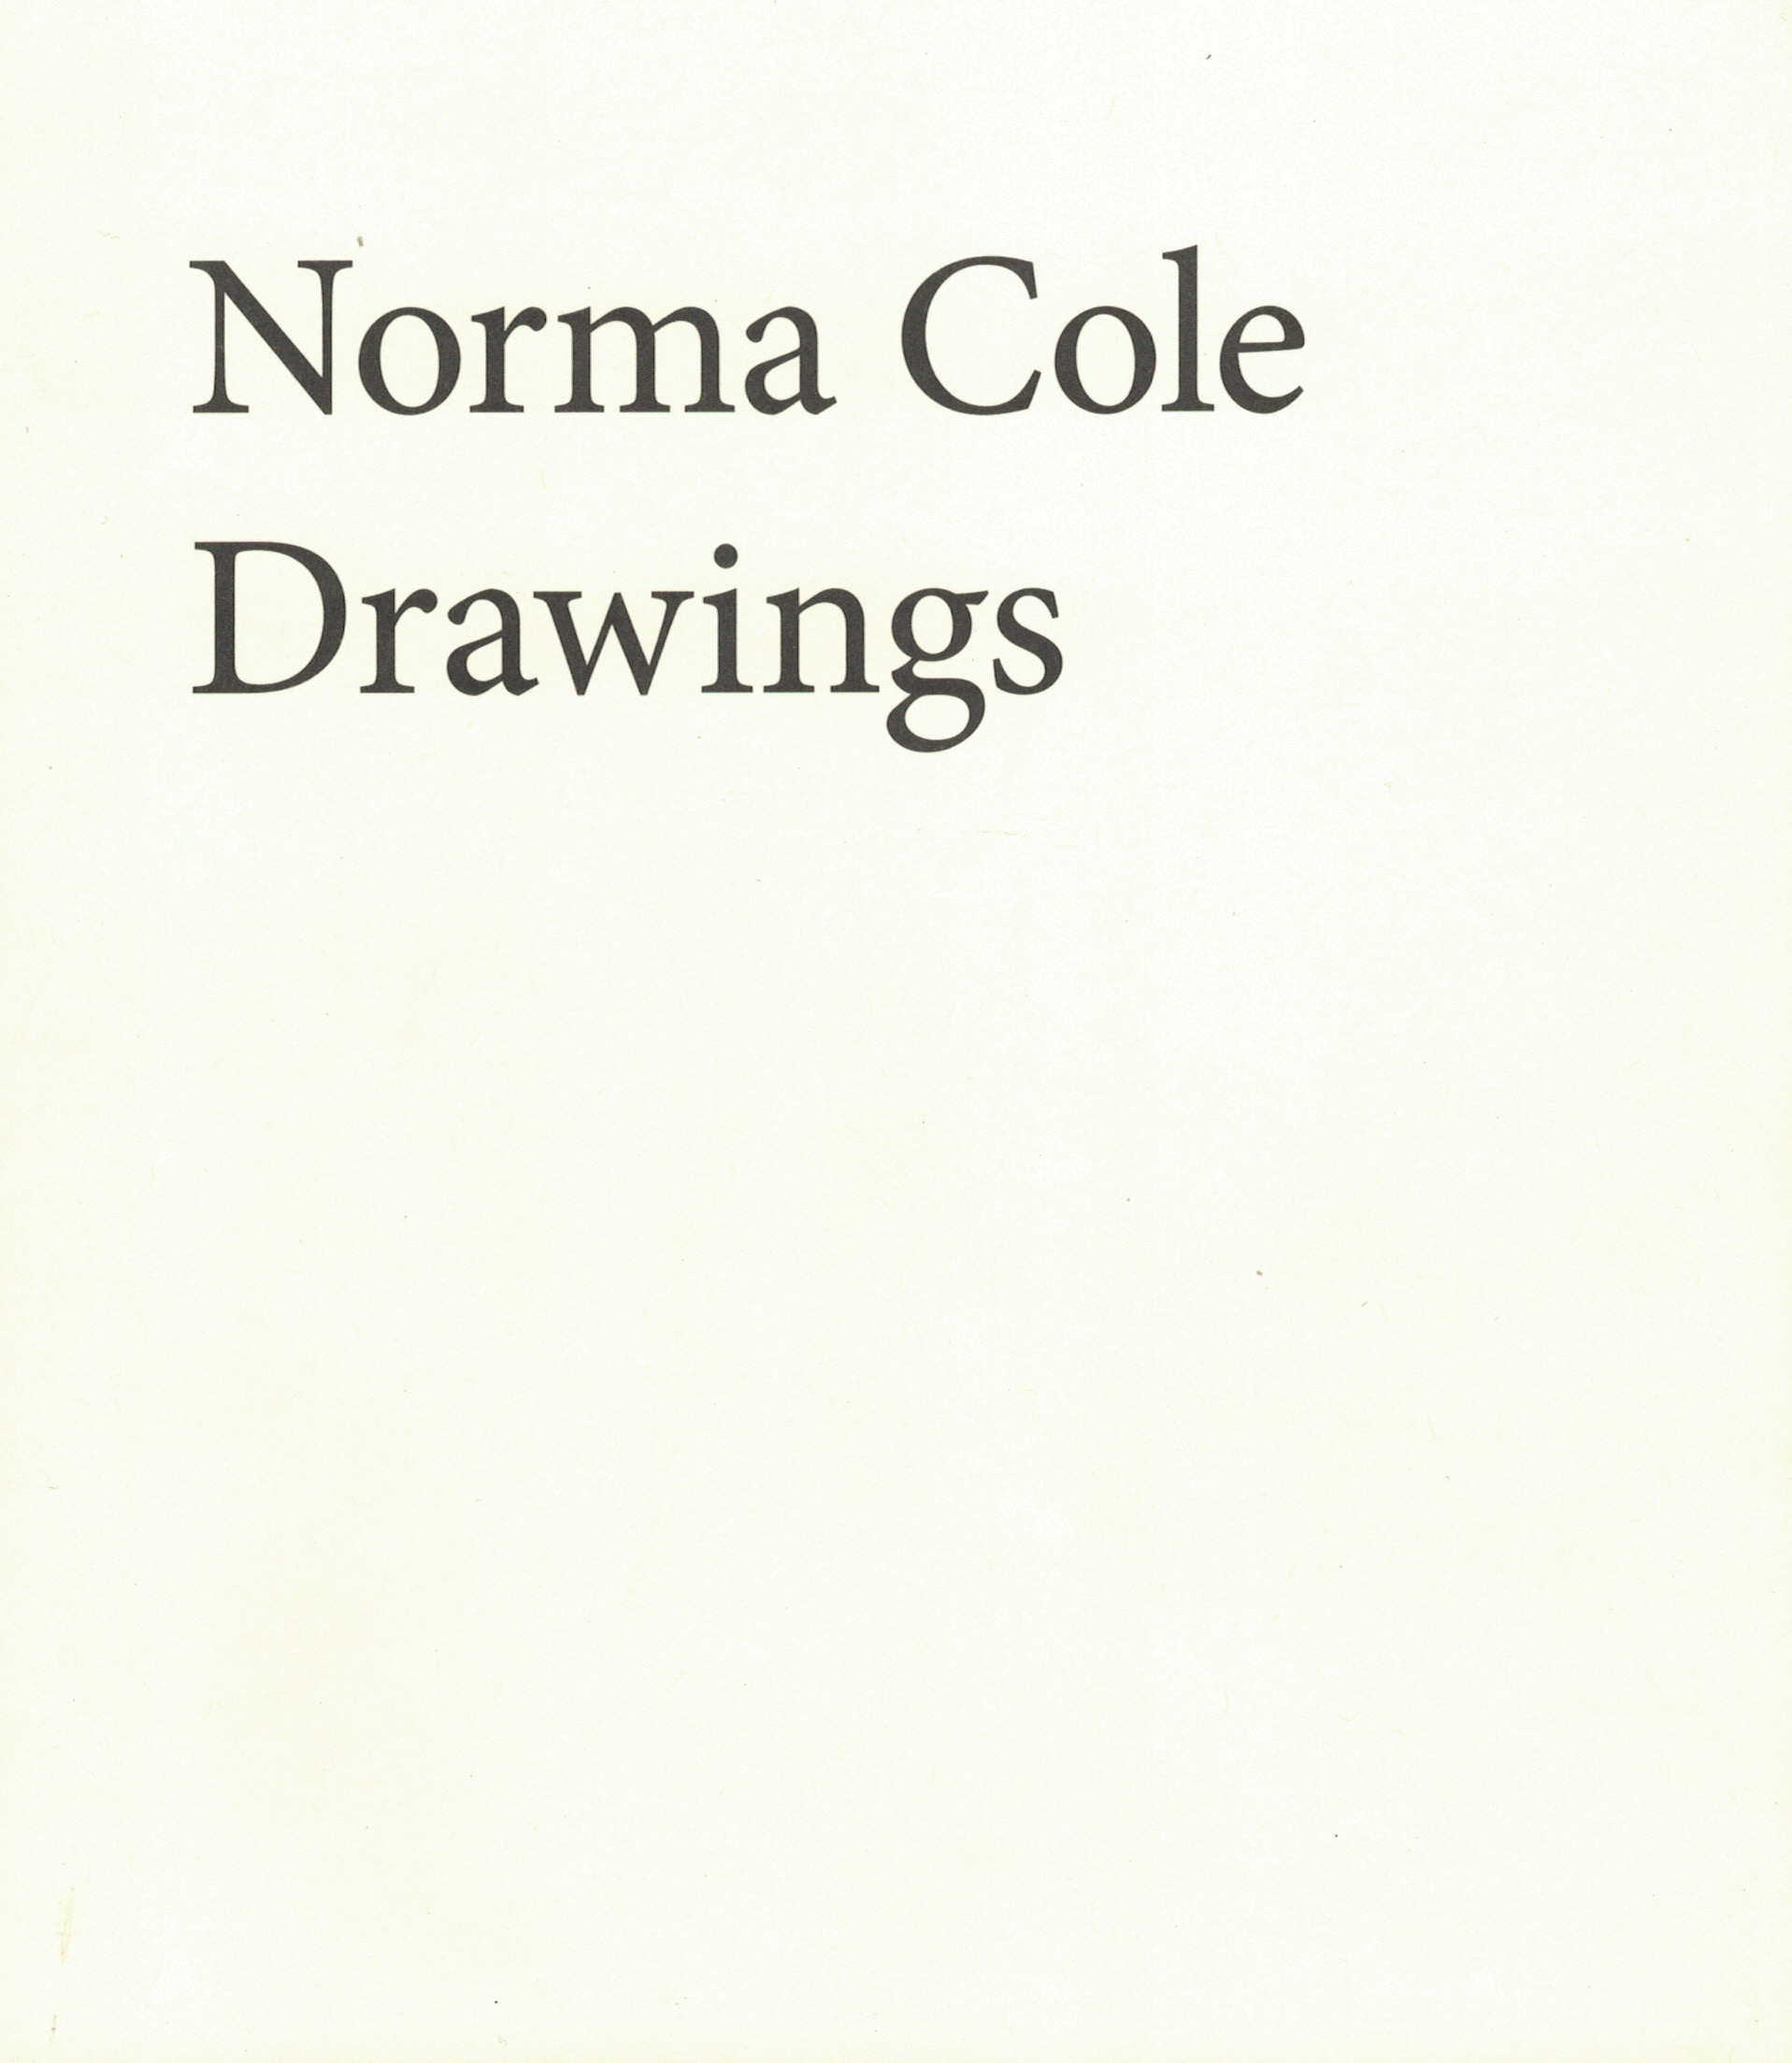 Norma Cole - Drawings (final cover)